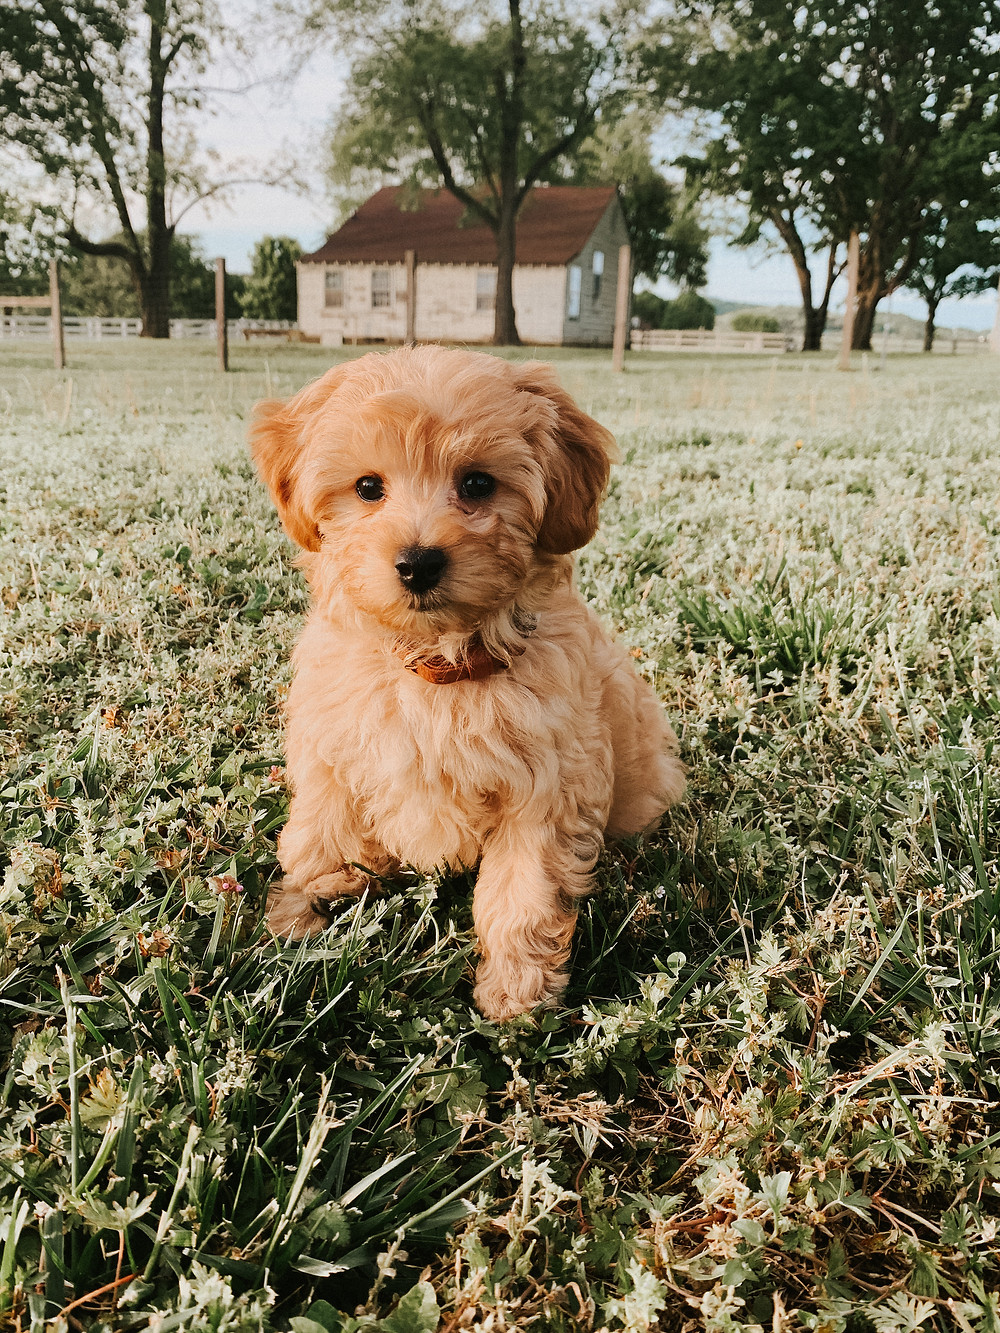 mini golden doodle puppy with an apricot colored coat in the grass in front of a farm house